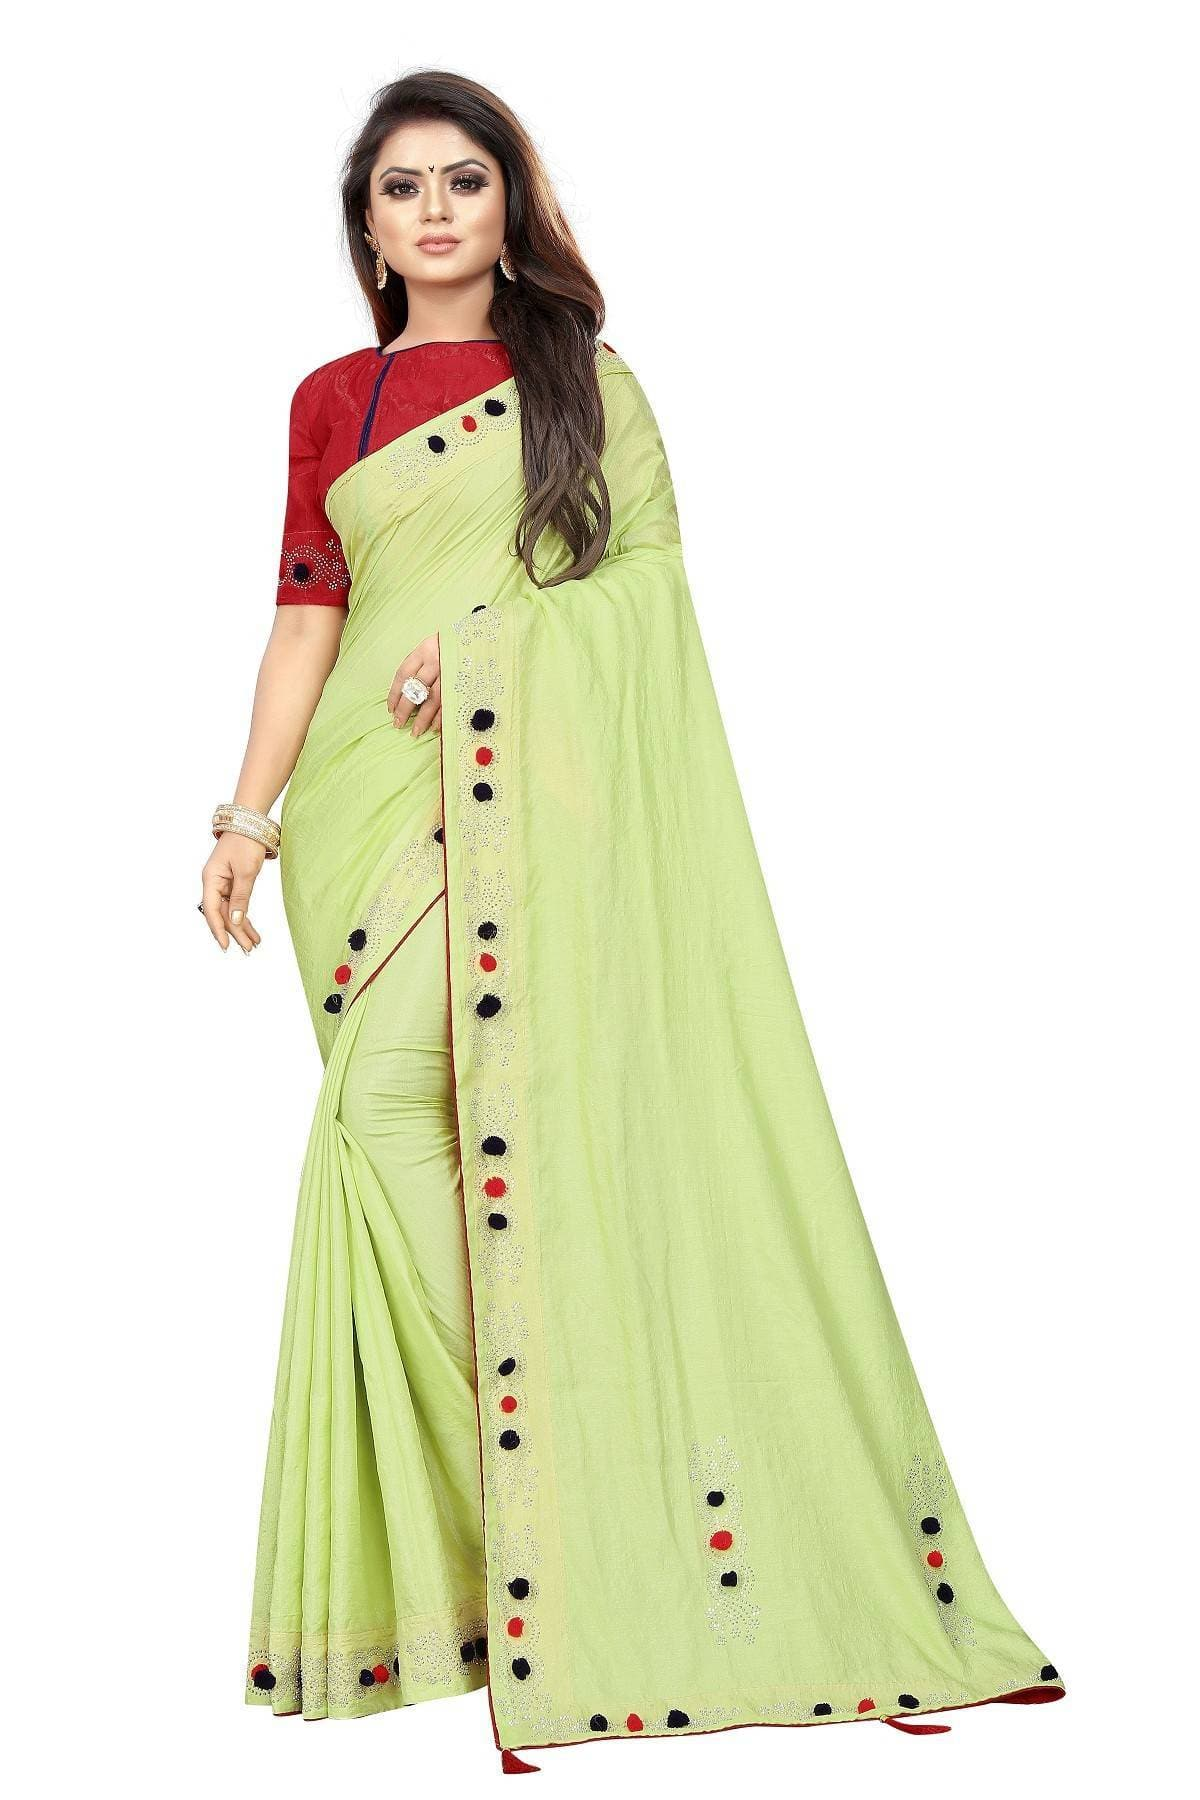 Vamika light green Sana Silk Diamond and Pom Pom Saree